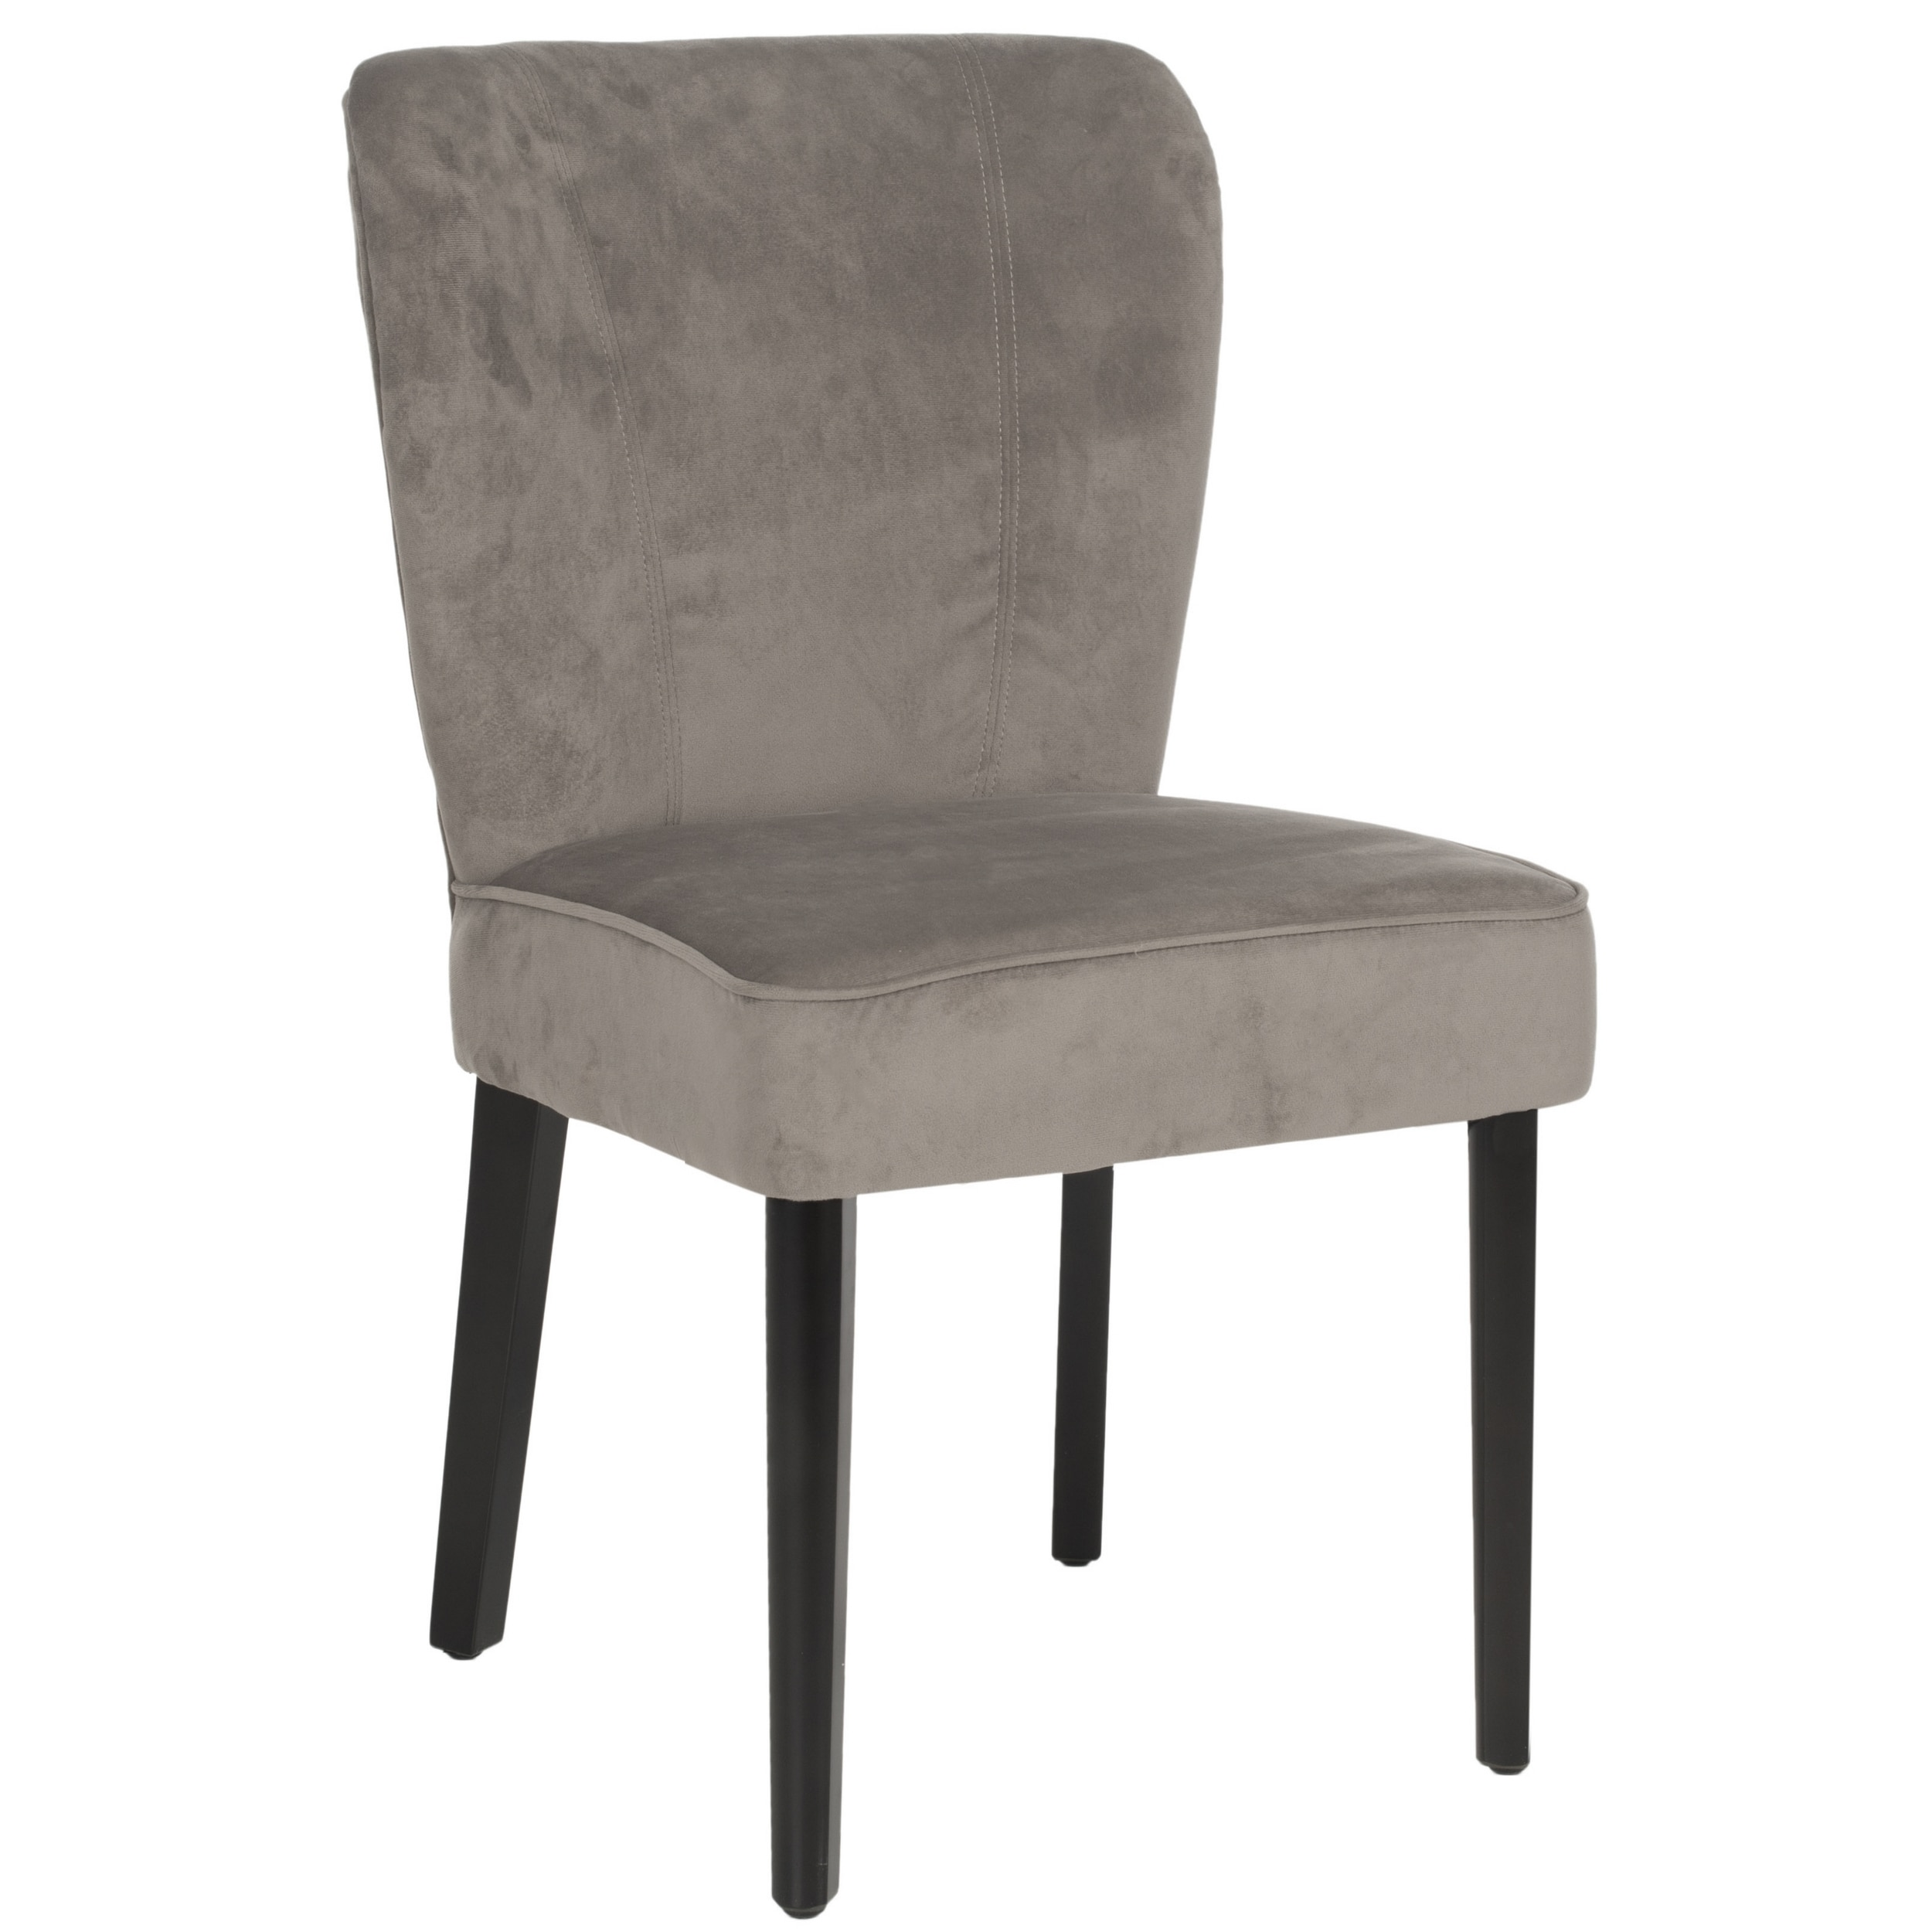 ba32de2c2e4f Shop Safavieh Mid Century Modern Dining Clifford Mushroom Taupe Dining  Chairs (Set of 2) - Free Shipping Today - Overstock - 8306962